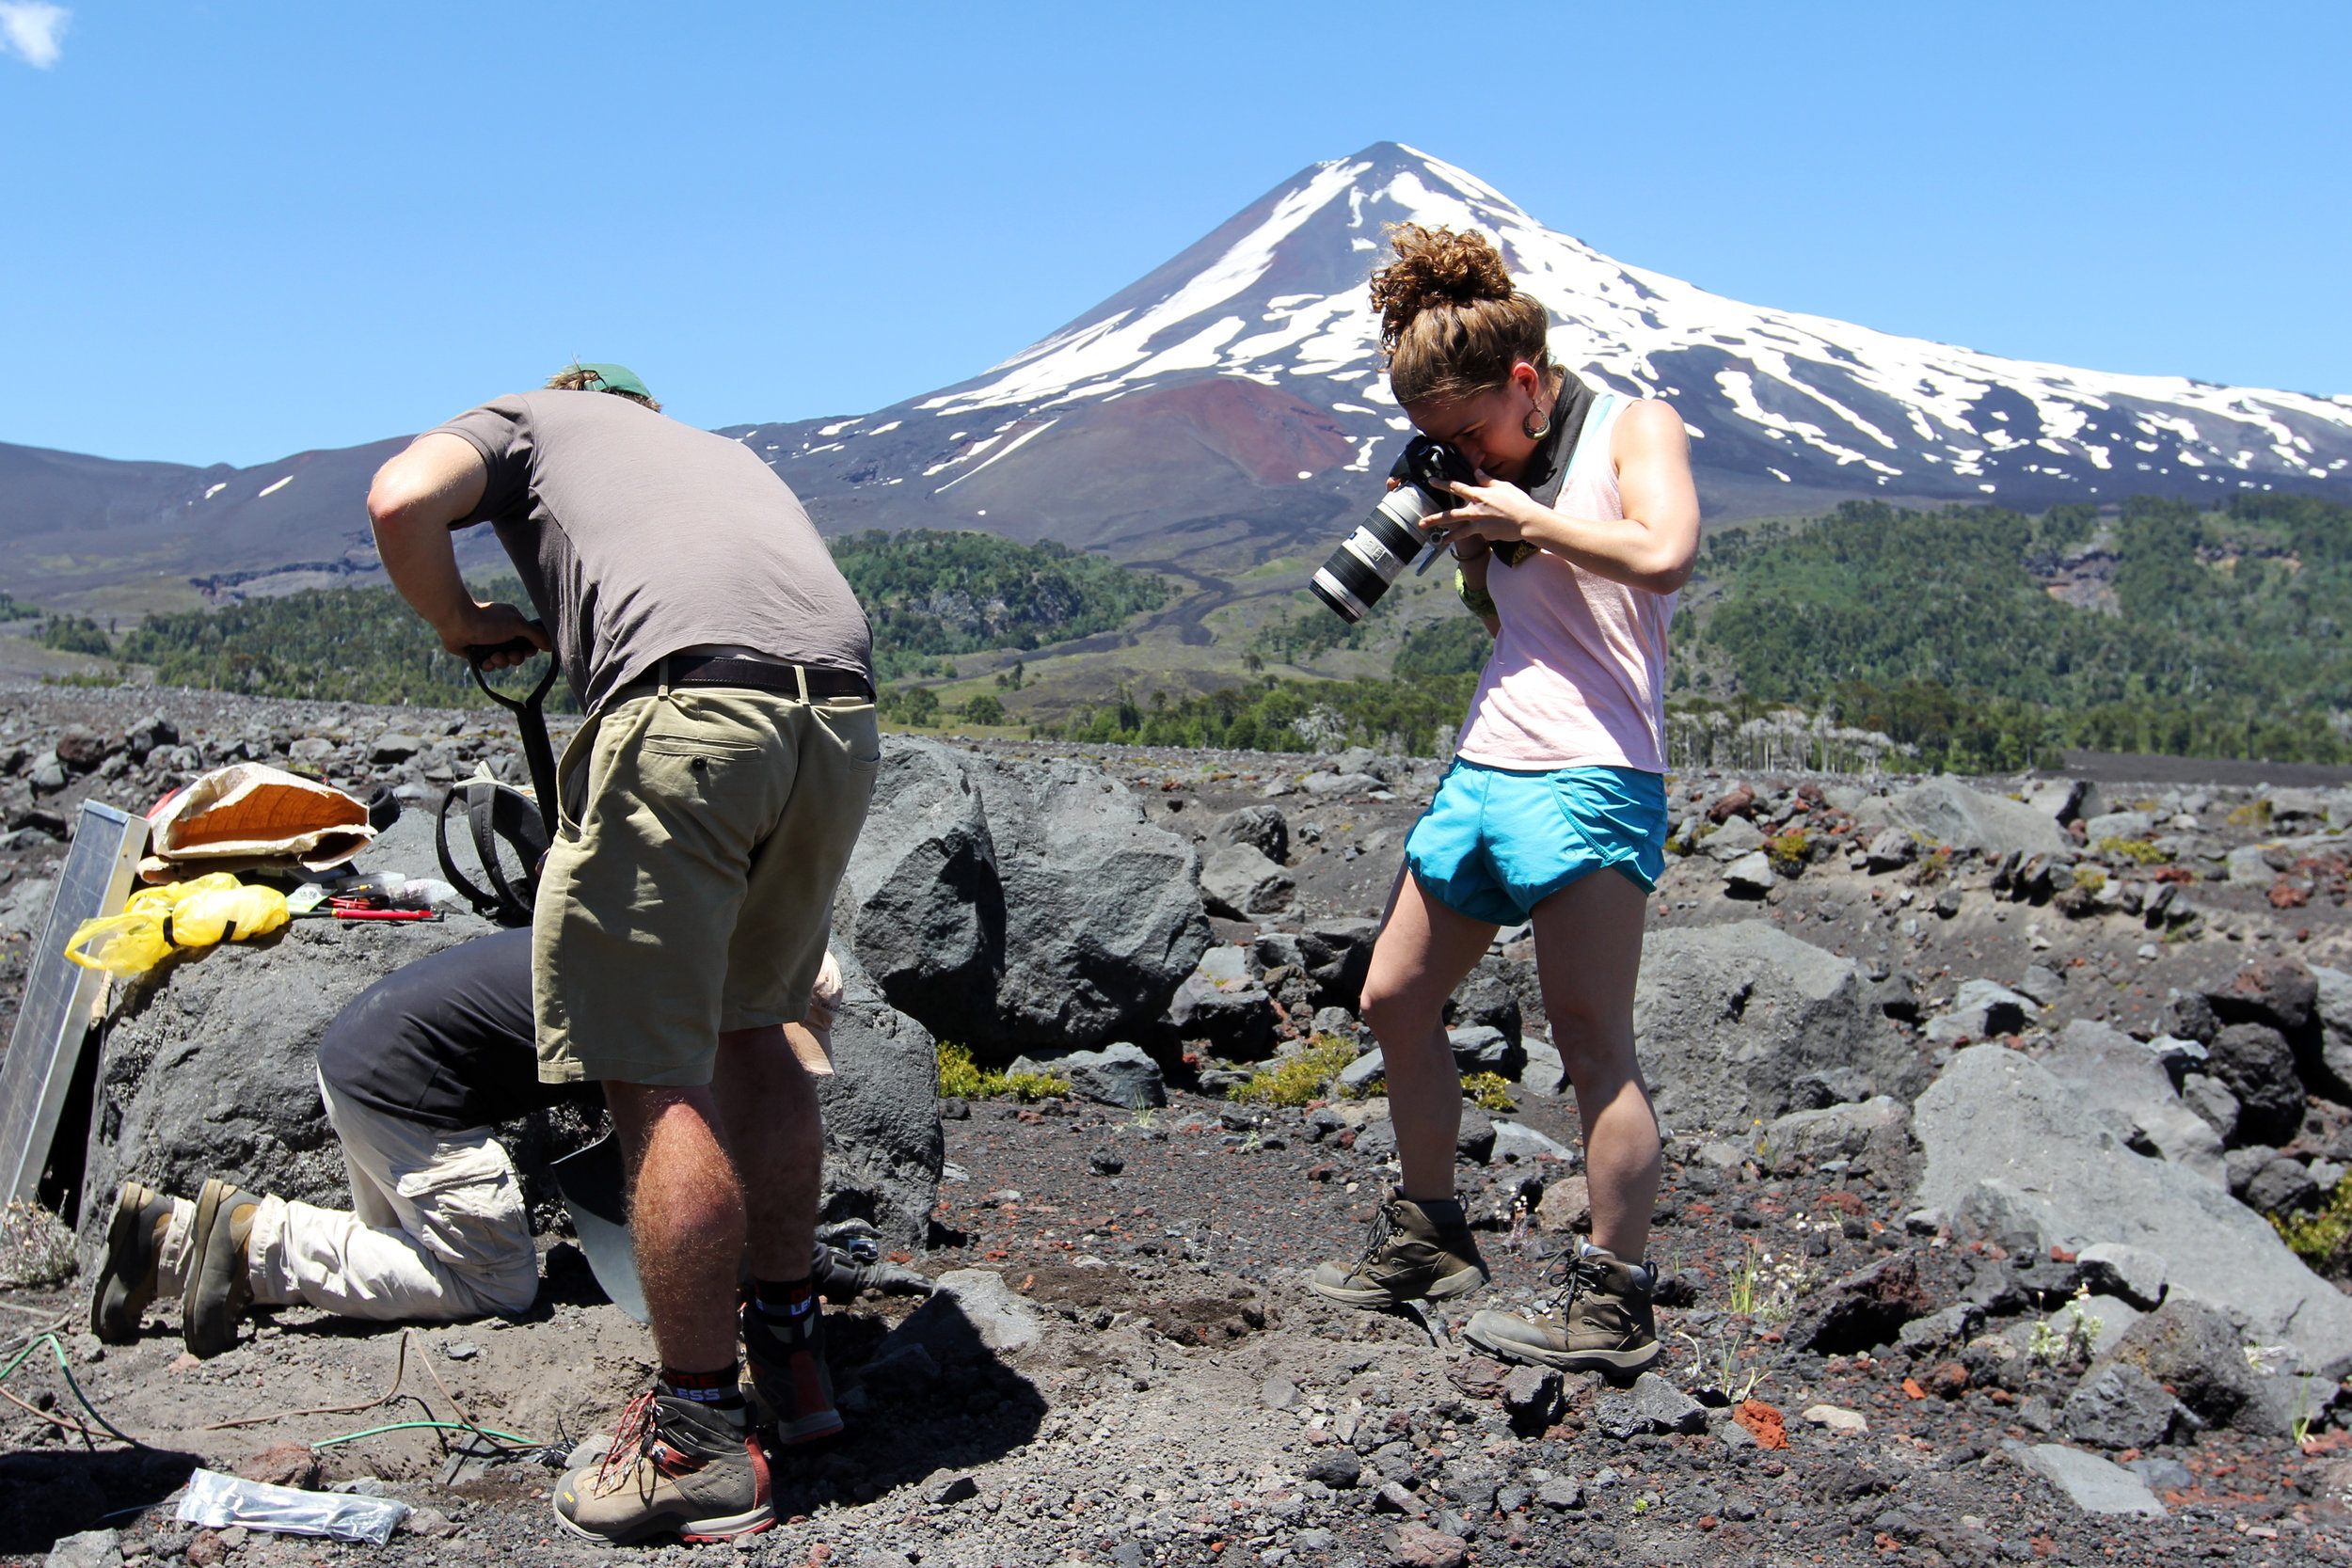 Seismometer installation on the Llaima volcano  |  Conguillo National Park, January 2015